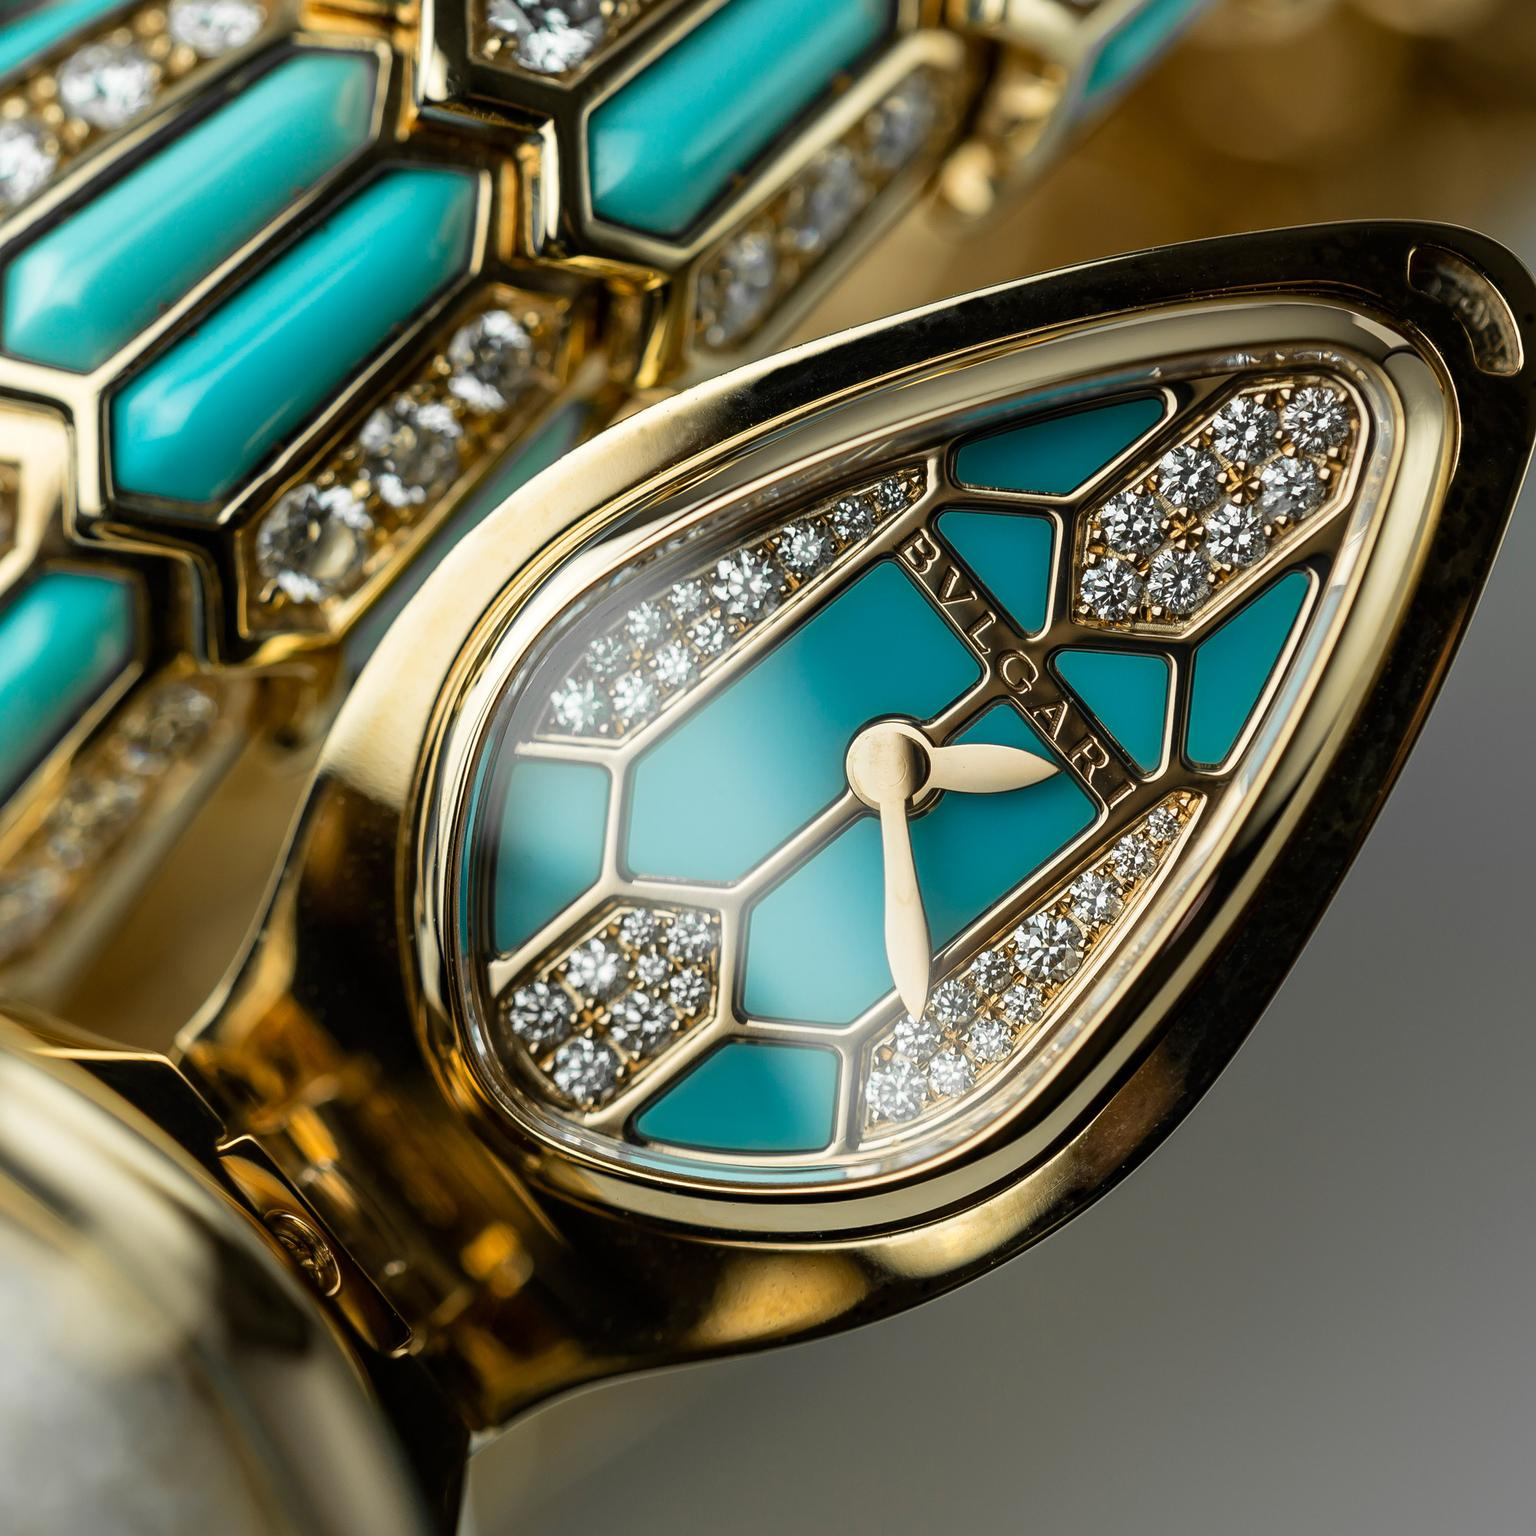 Bulgari Serpenti watch face